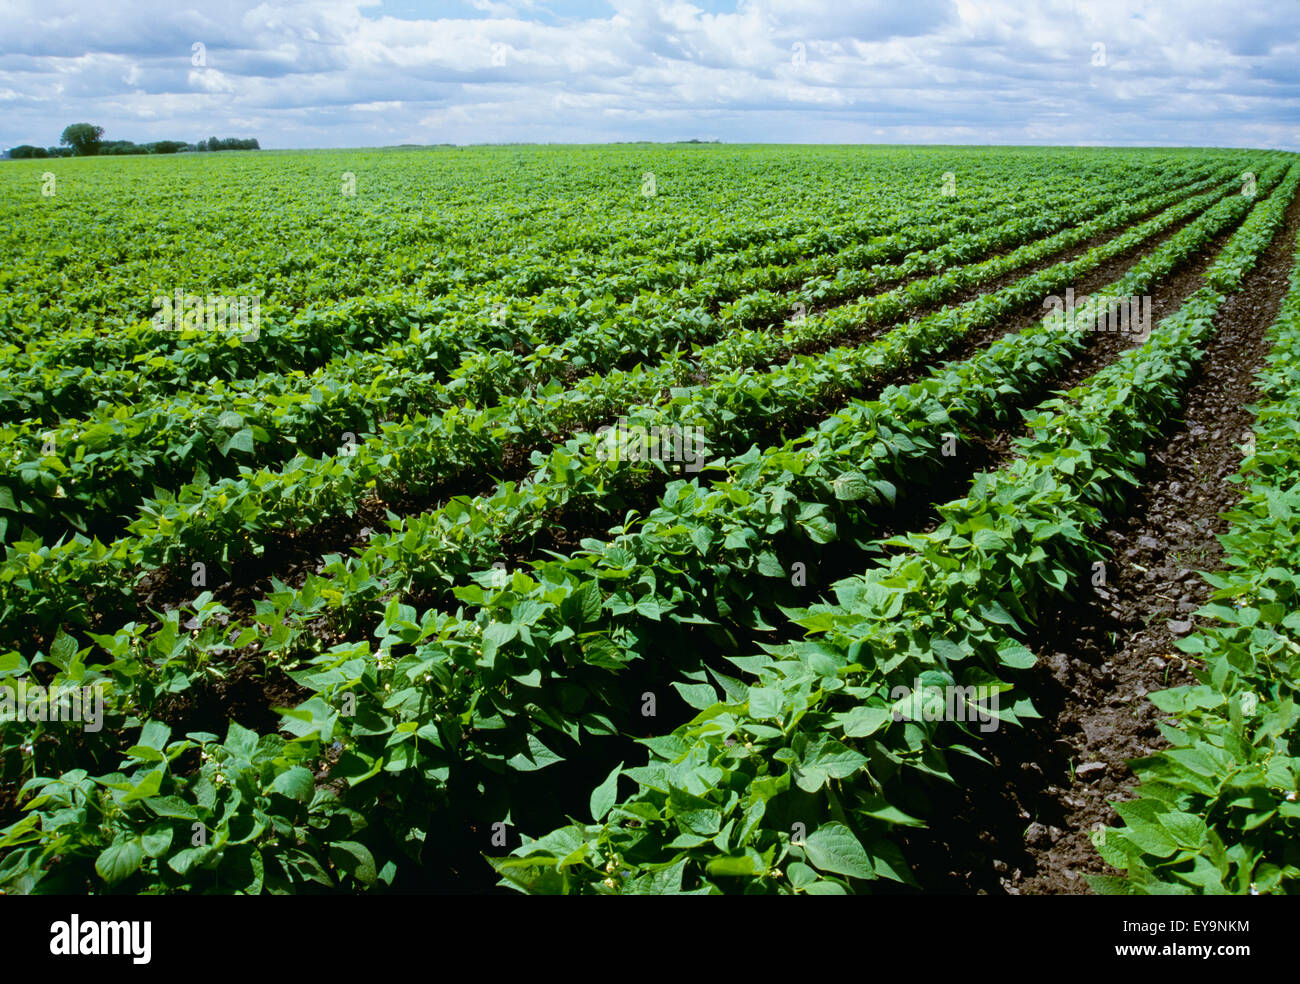 Agriculture Field Of Mid Growth Red Kidney Bean Plants Just Stock Photo Alamy